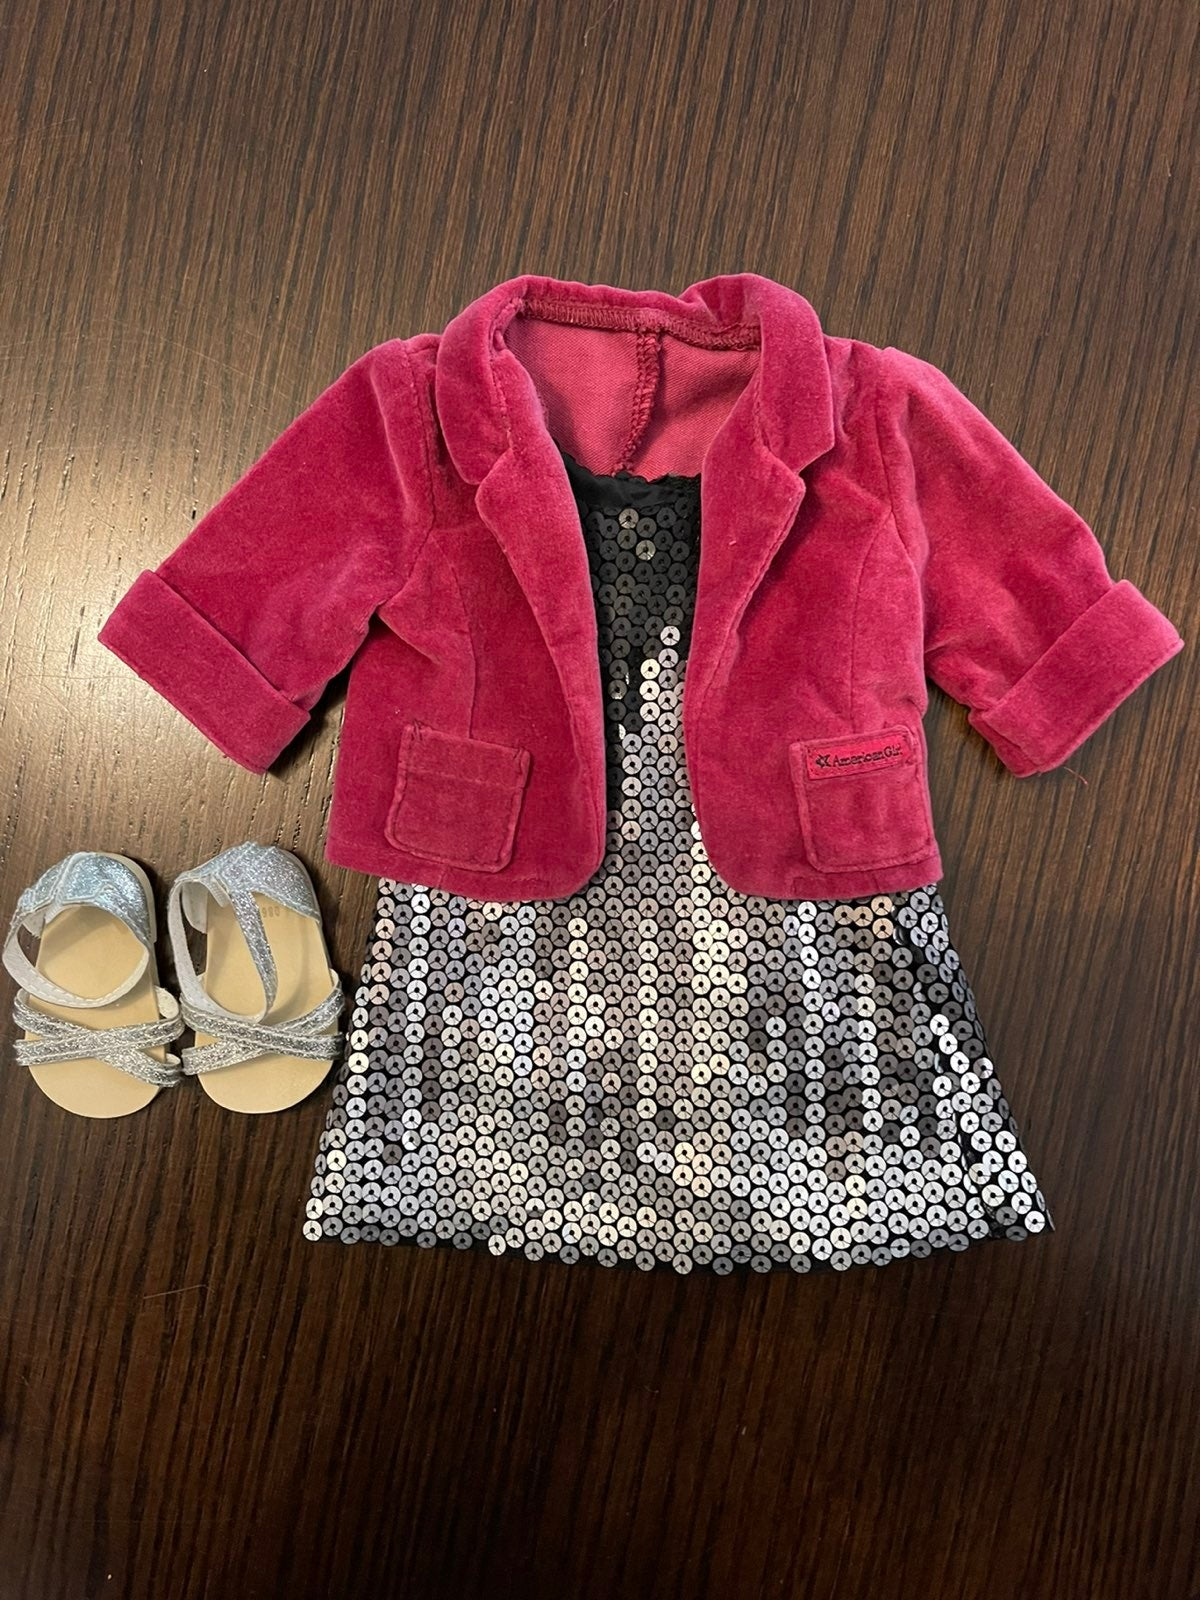 AG Tenney's Sparkling Performance Outfit